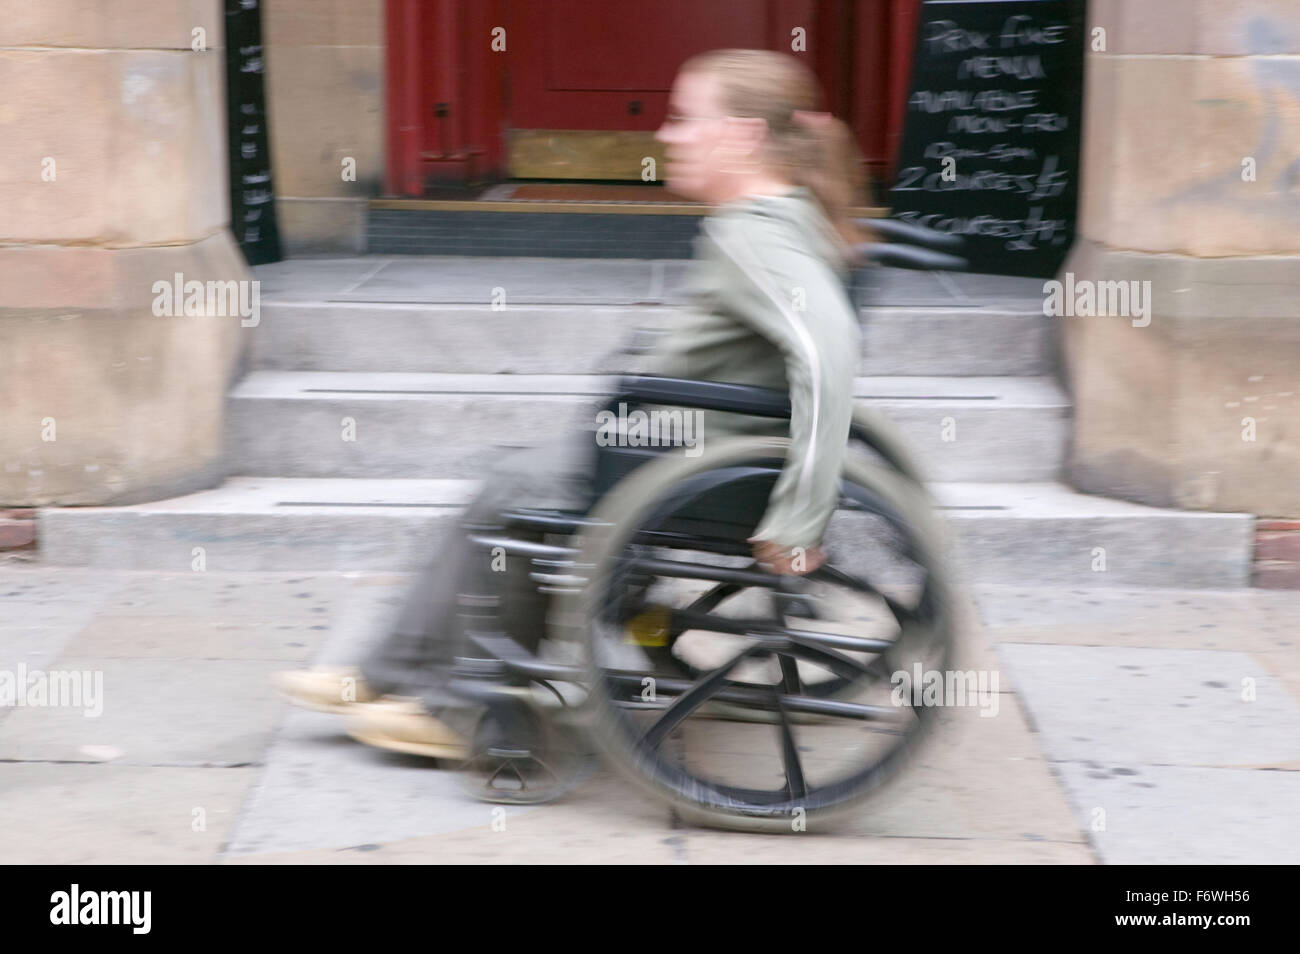 Young wheelchair user moving past a flight of steps which she is unable to access, - Stock Image